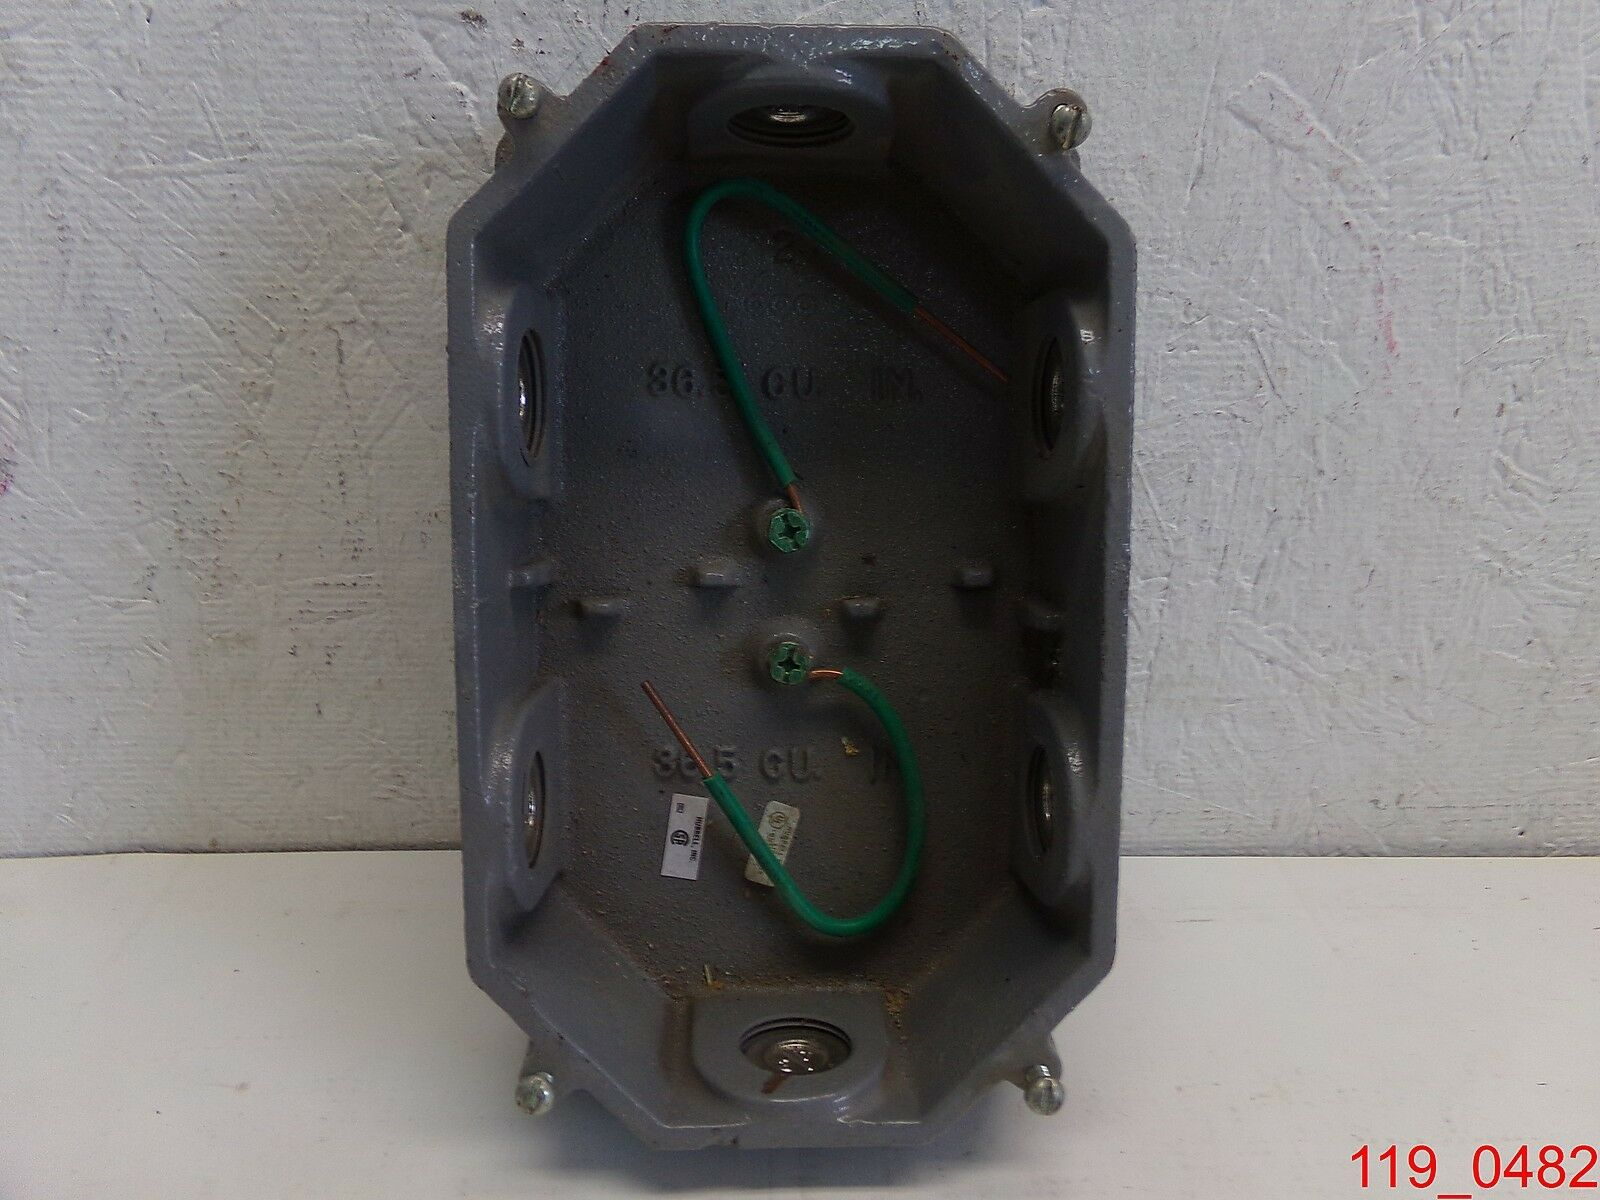 Hubbell Wiring Device Kellems 232a Floor Outlet Box Cast Iron Brass 1 Of 3only Available